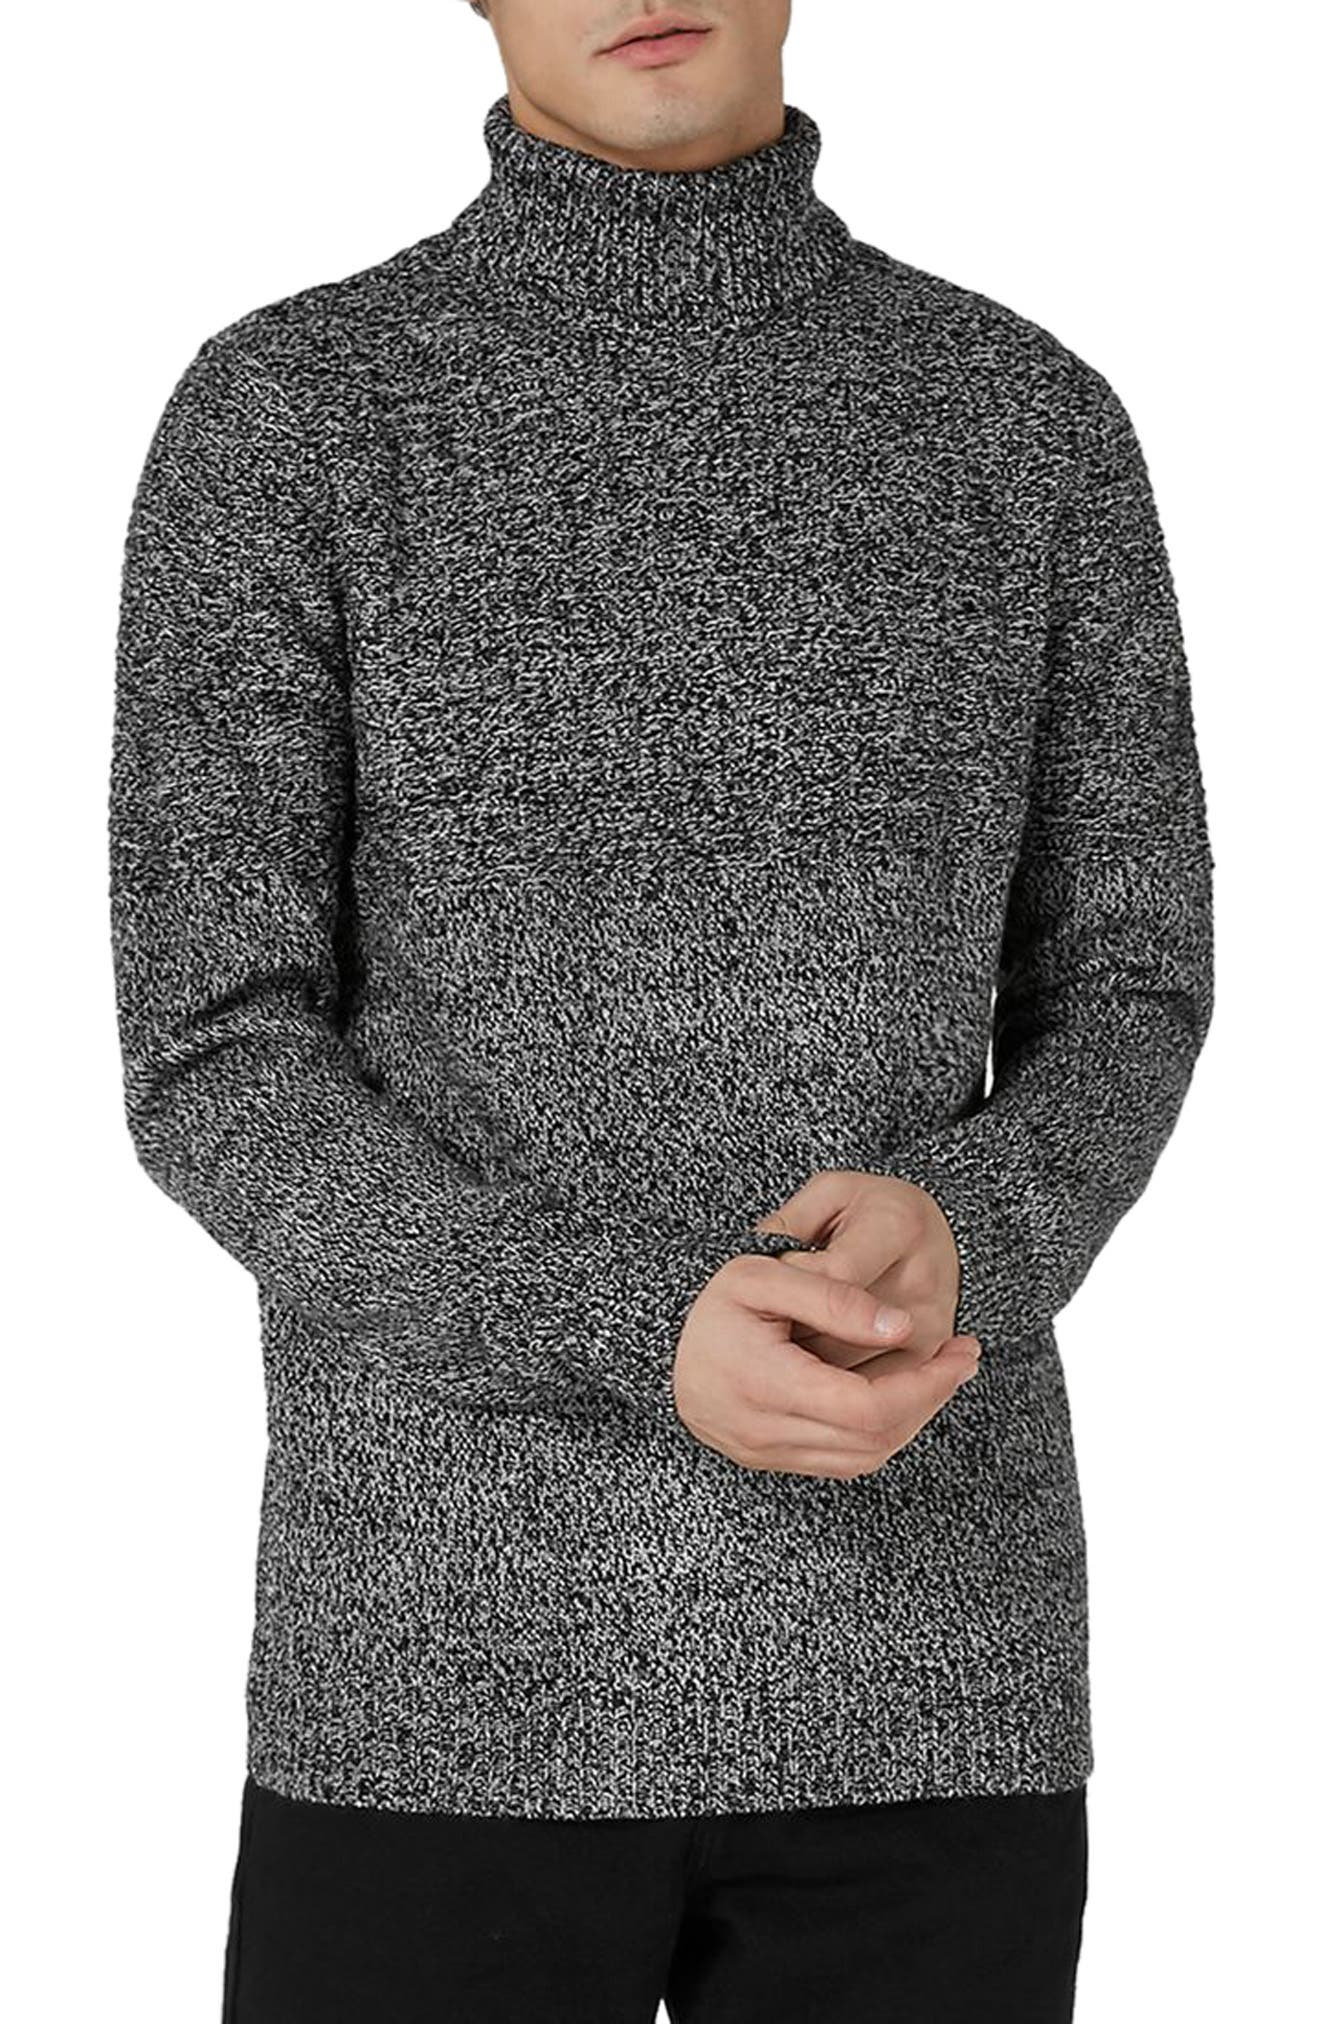 Twist Roll Neck Sweater,                             Main thumbnail 1, color,